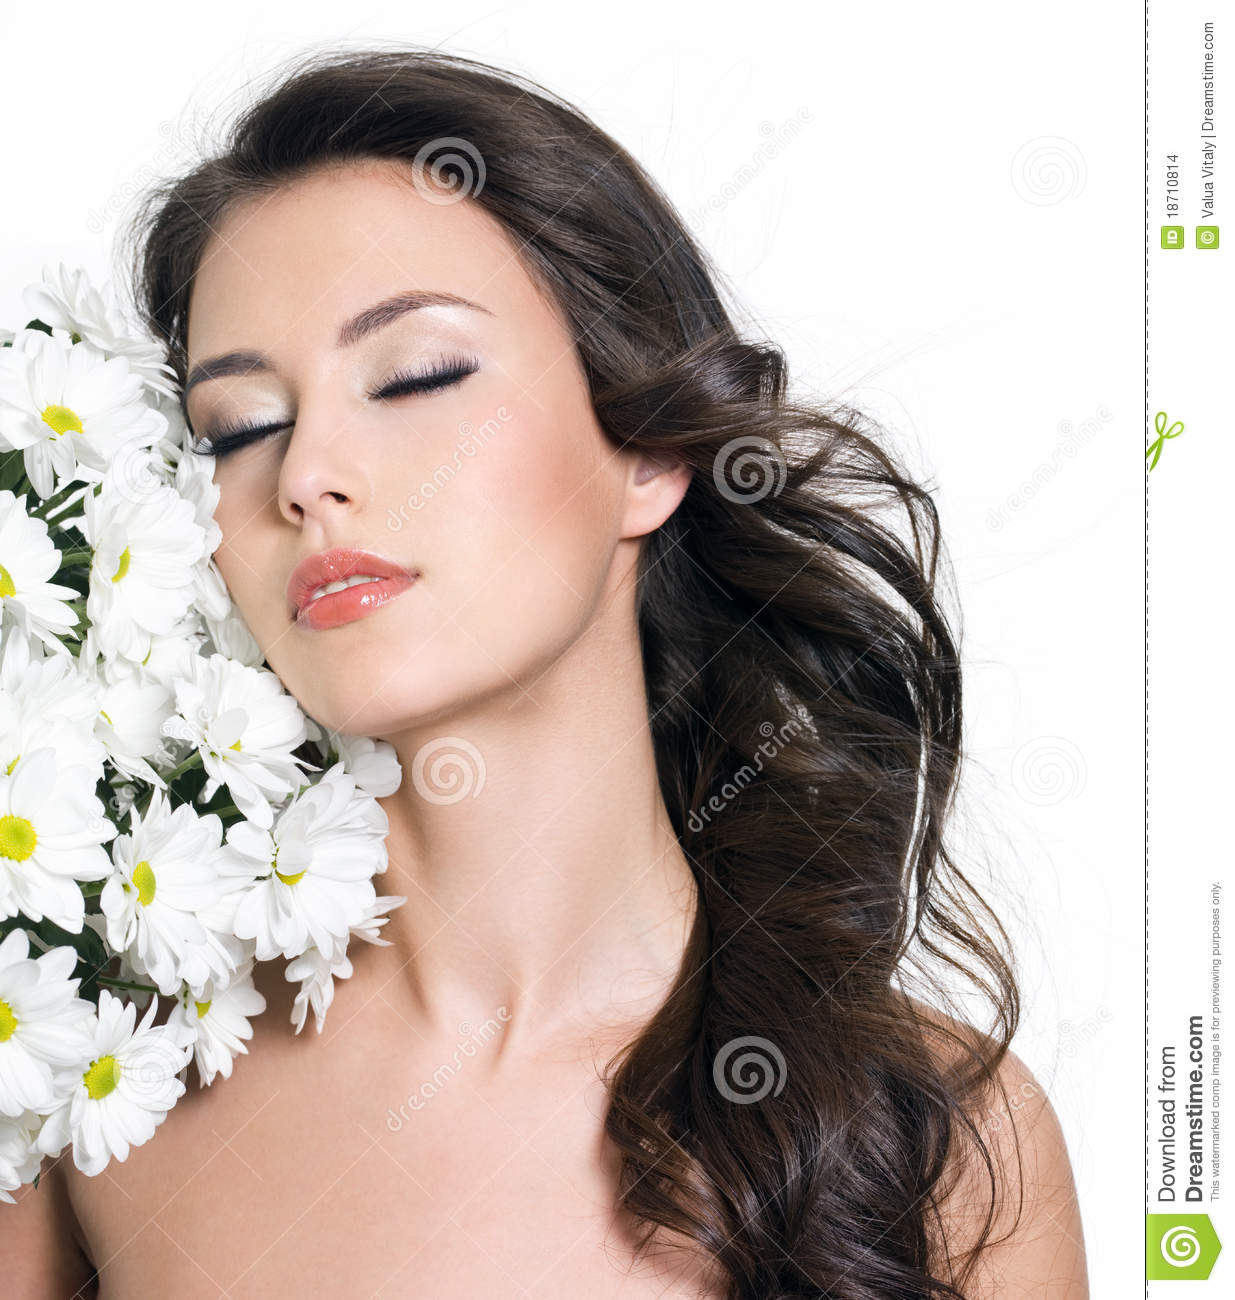 Woman relaxing with flowers